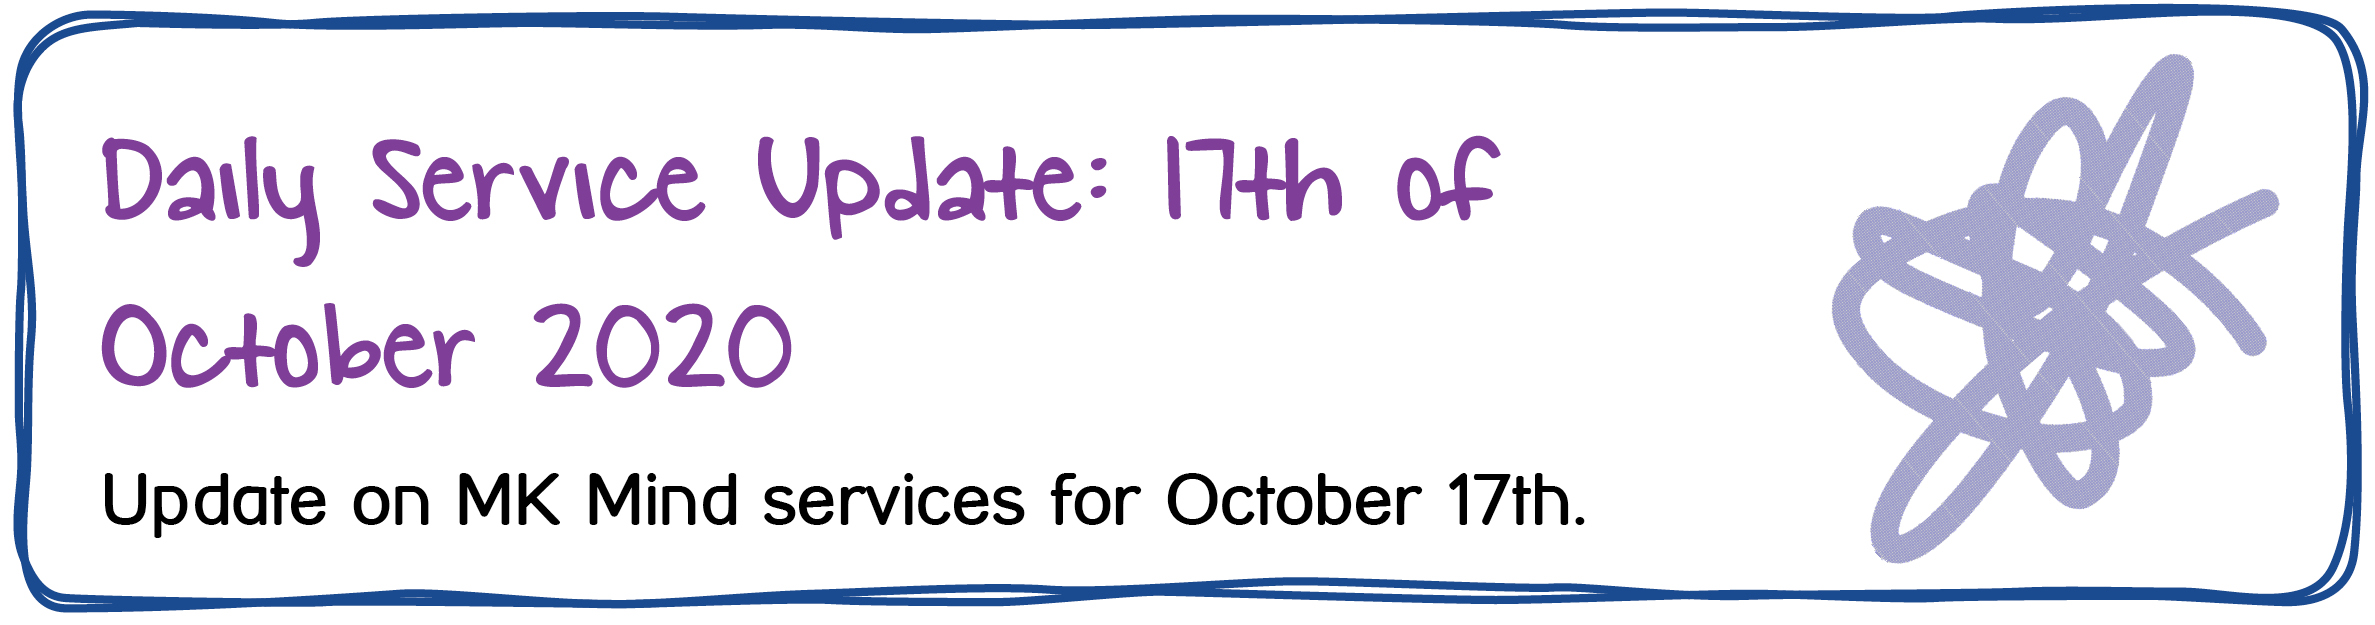 Daily Service Update: 17th of October 2020. Update on Mid-Kent Mind services for October 17th.